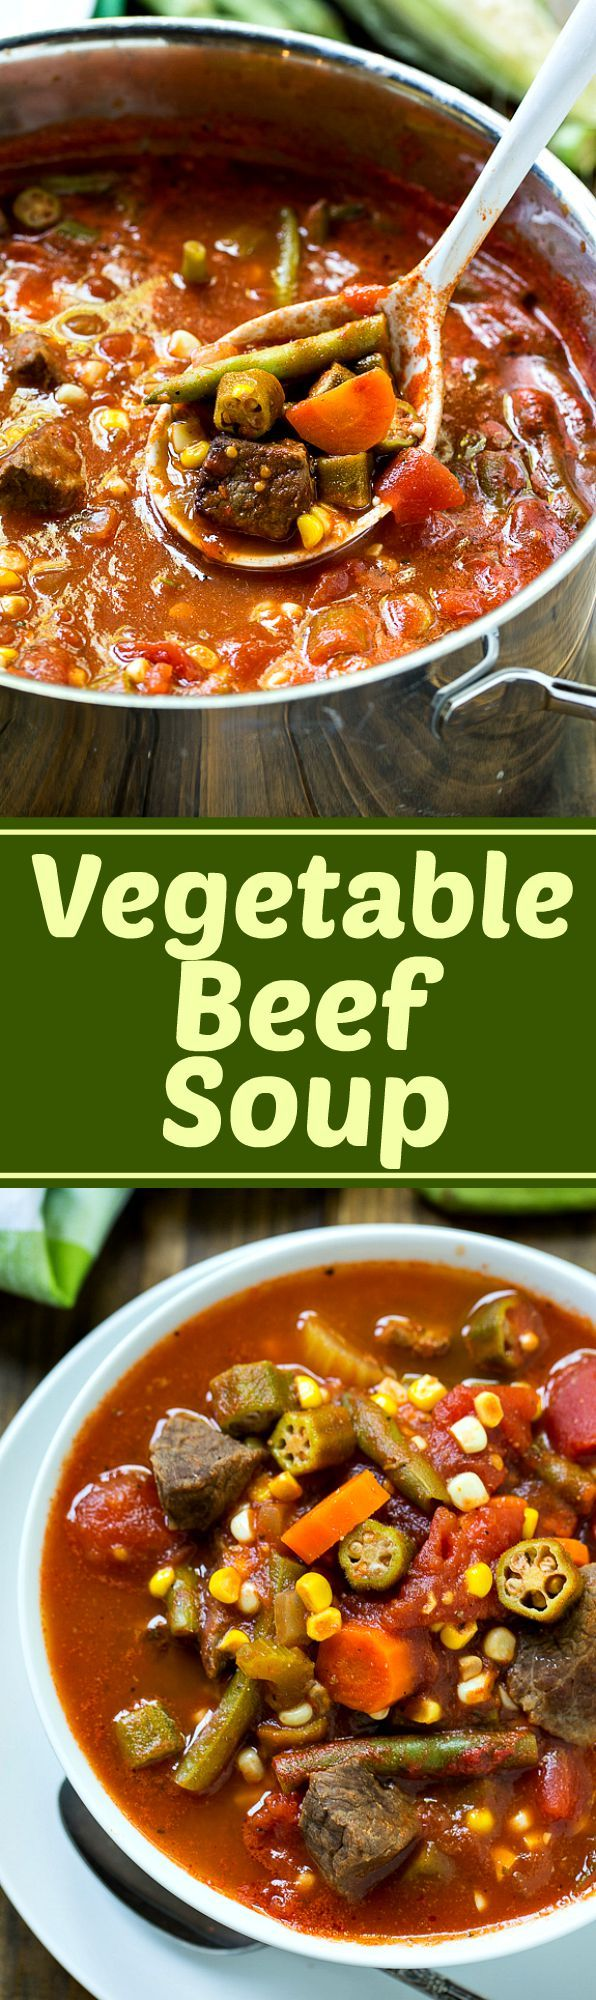 Vegetable Beef Soup is a great way to use up end of summer veggies. Make a large batch and freeze to eat when the weather cools down.